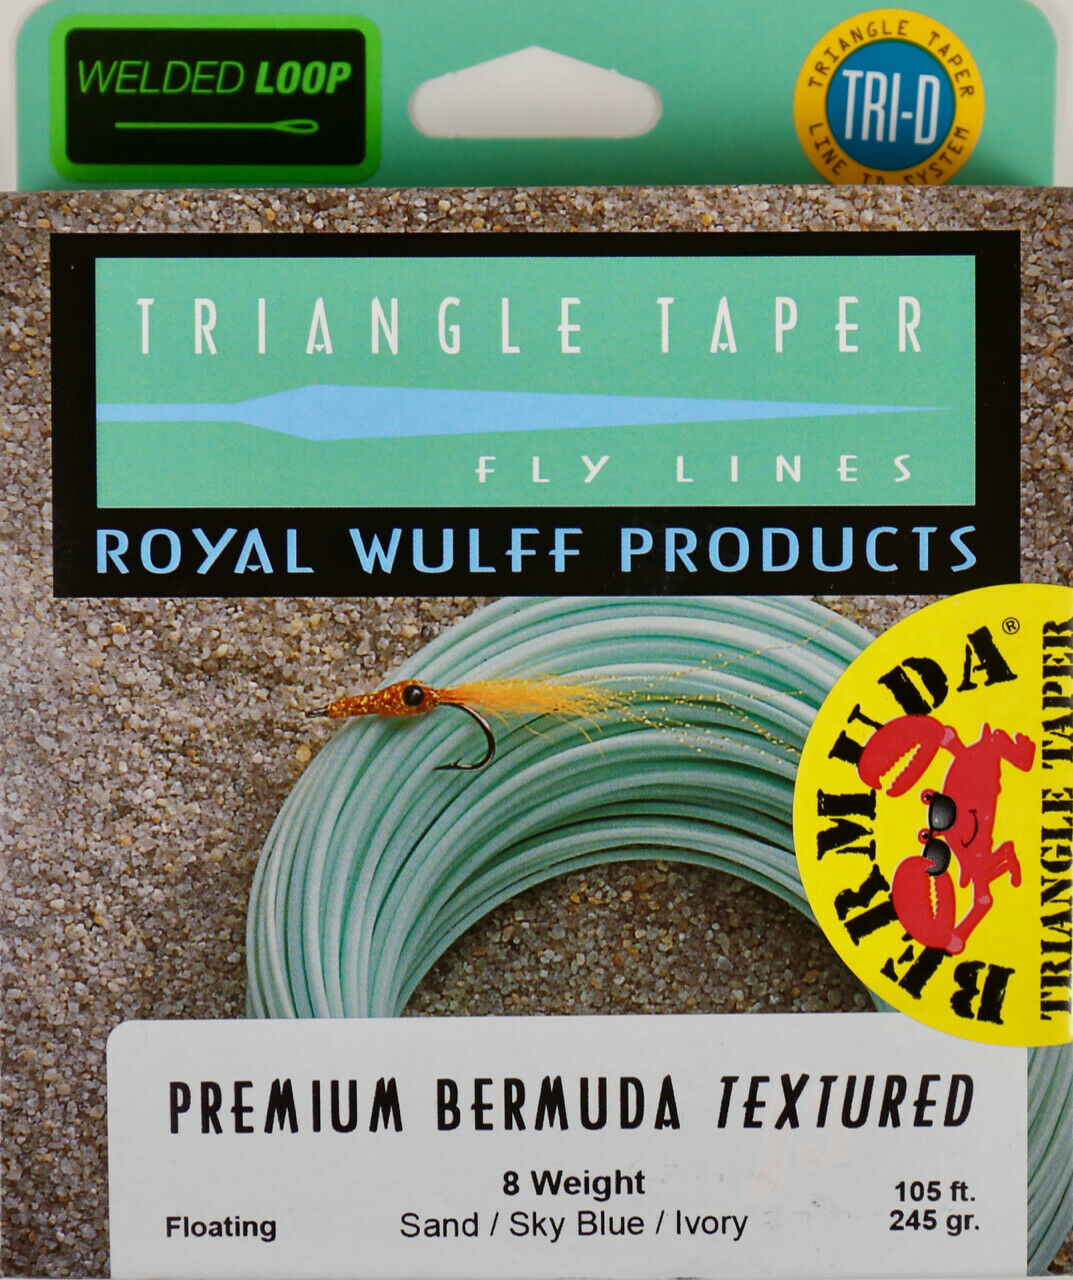 Royal Wulff Premium Bermuda Textured Saltwater 8 WT Fly Line FREE FAST SHIPPING